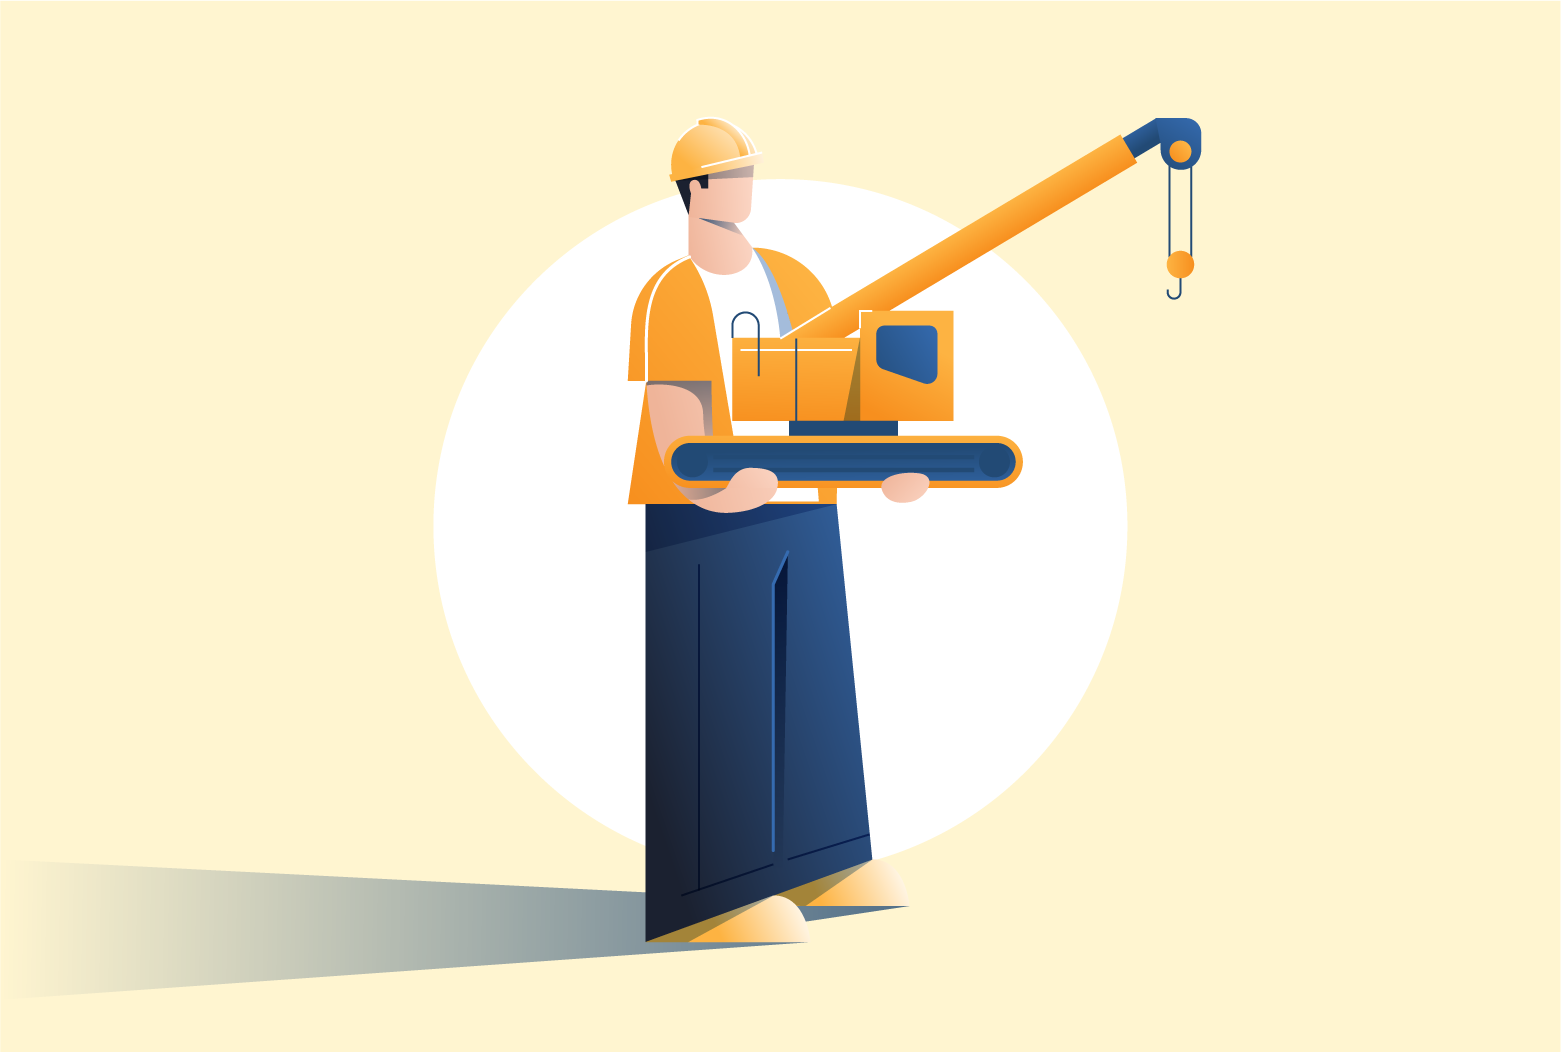 construction worker holding small crane